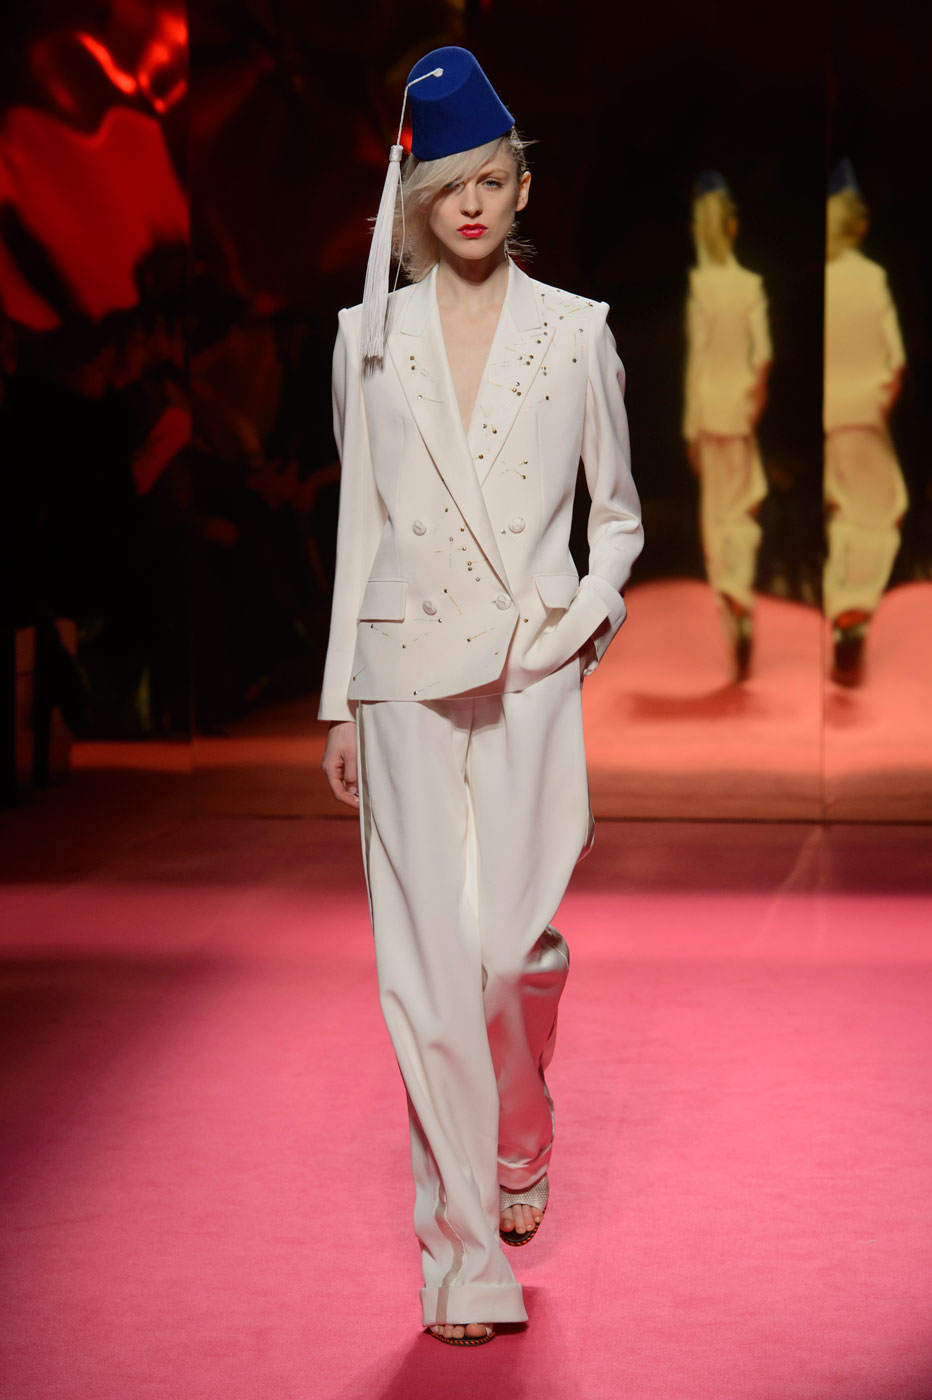 Schiaparelli-fashion-runway-show-haute-couture-paris-spring-summer-2015-the-impression-03